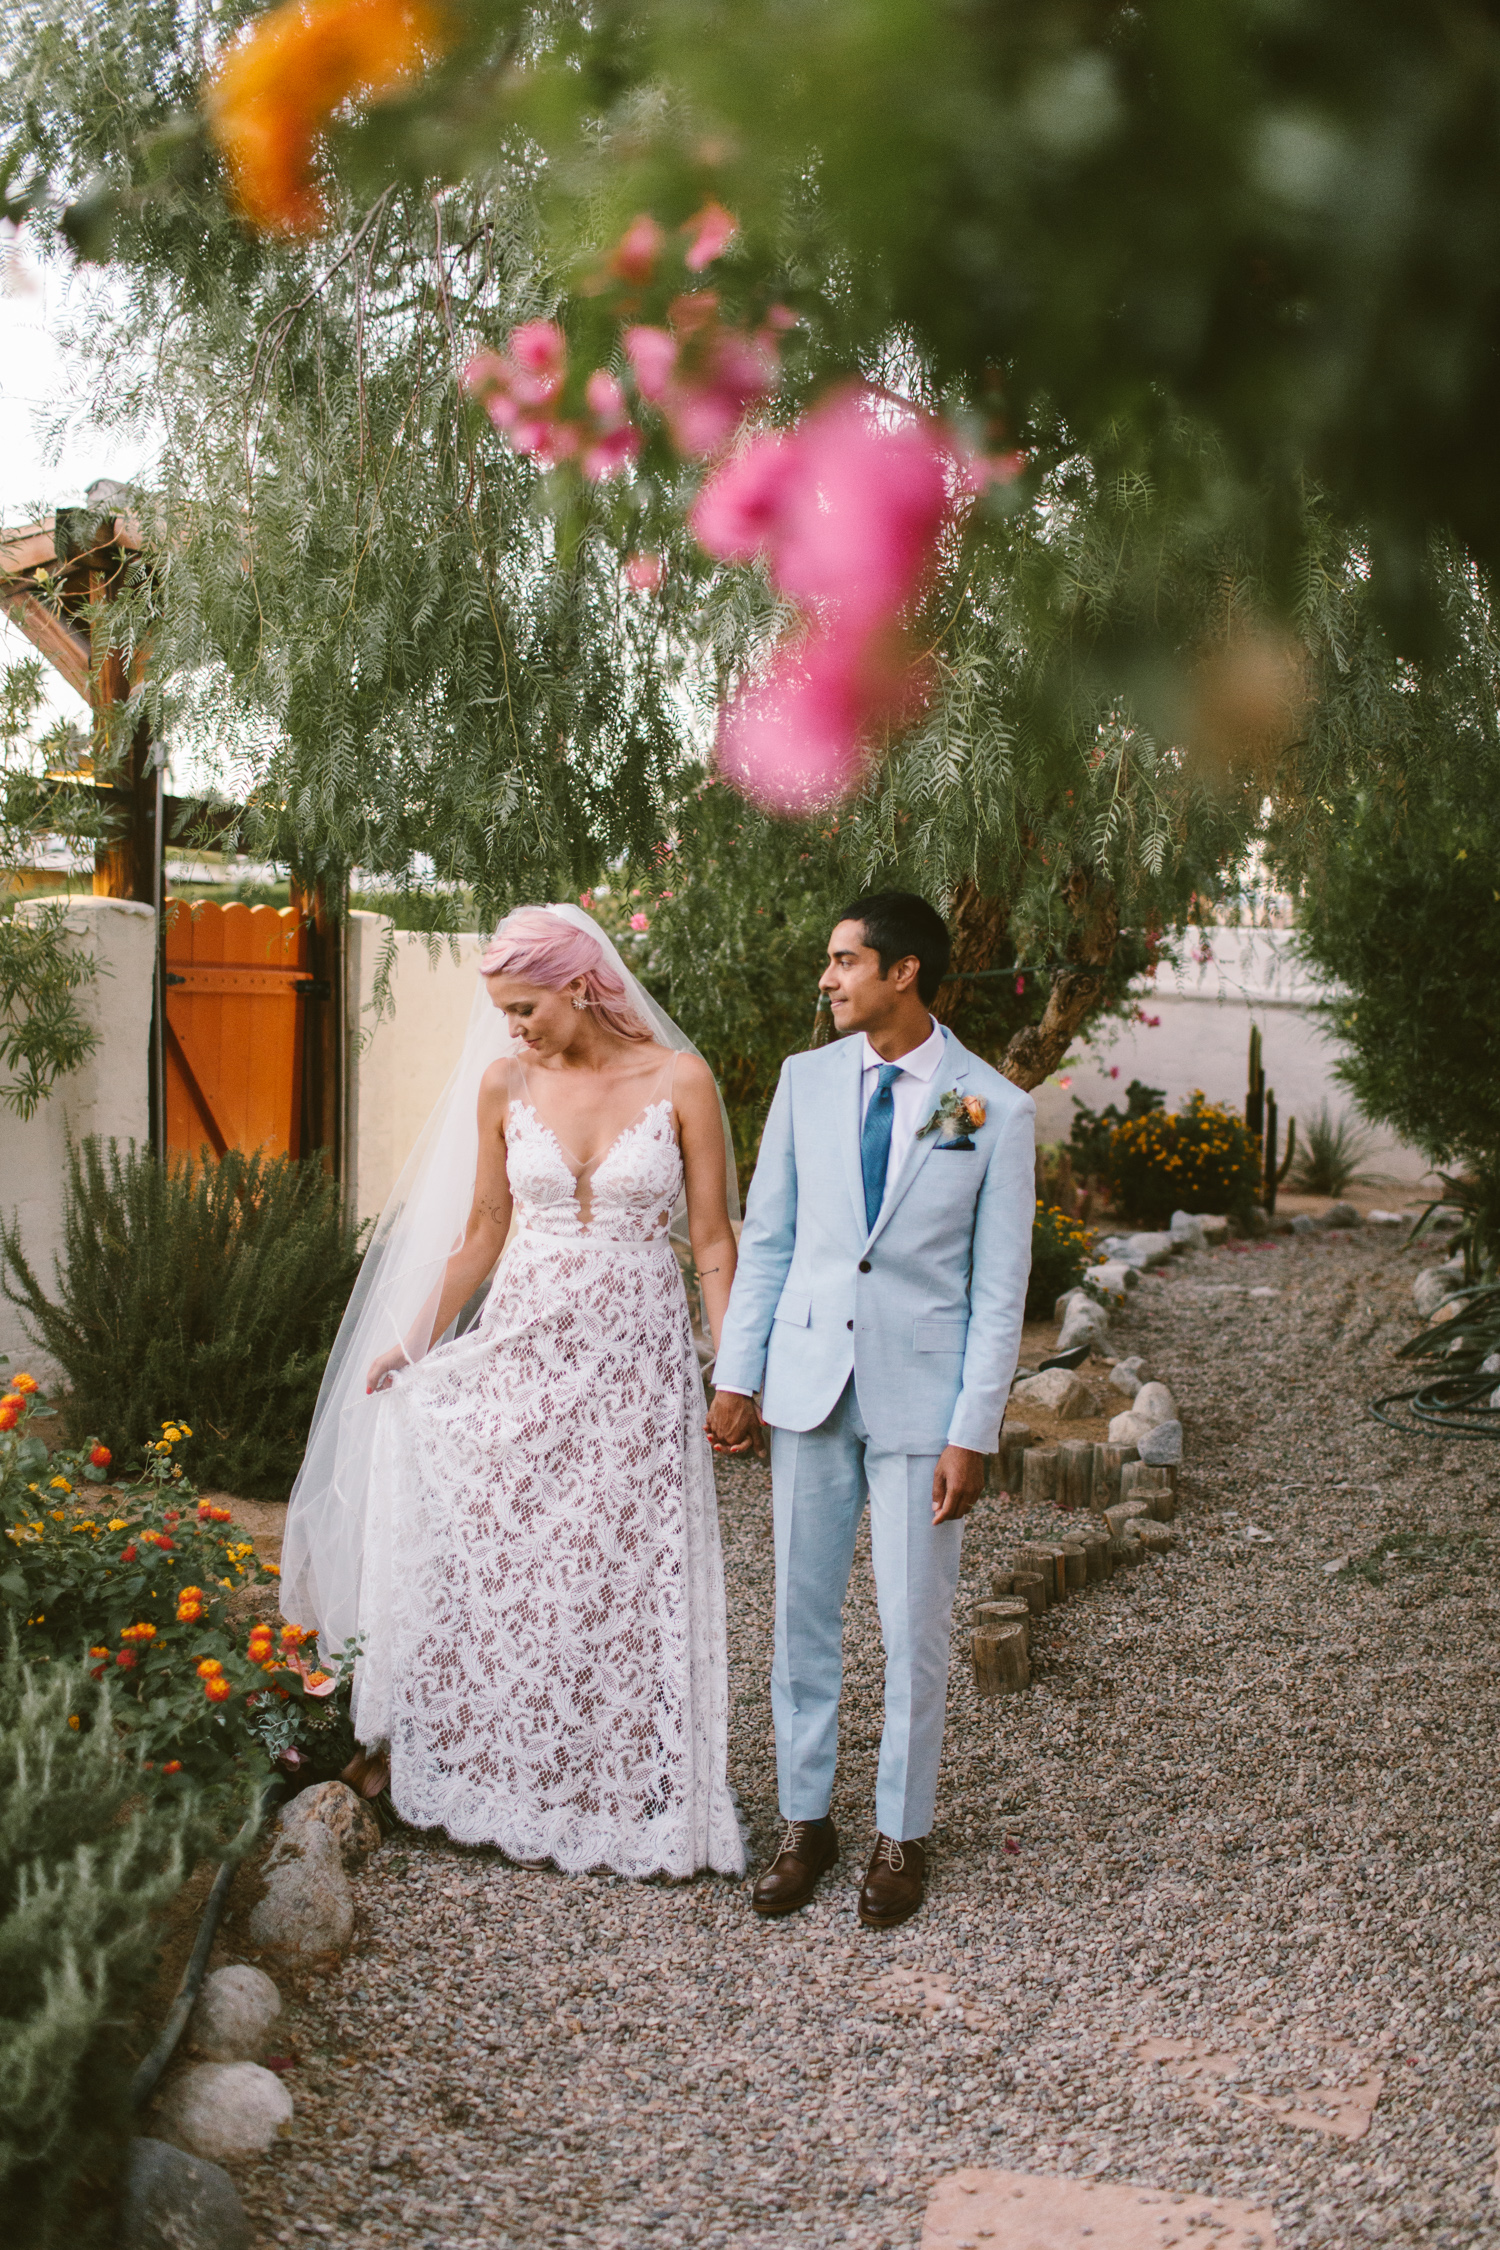 westlund-photography-palm-springs-wedding-62.jpg